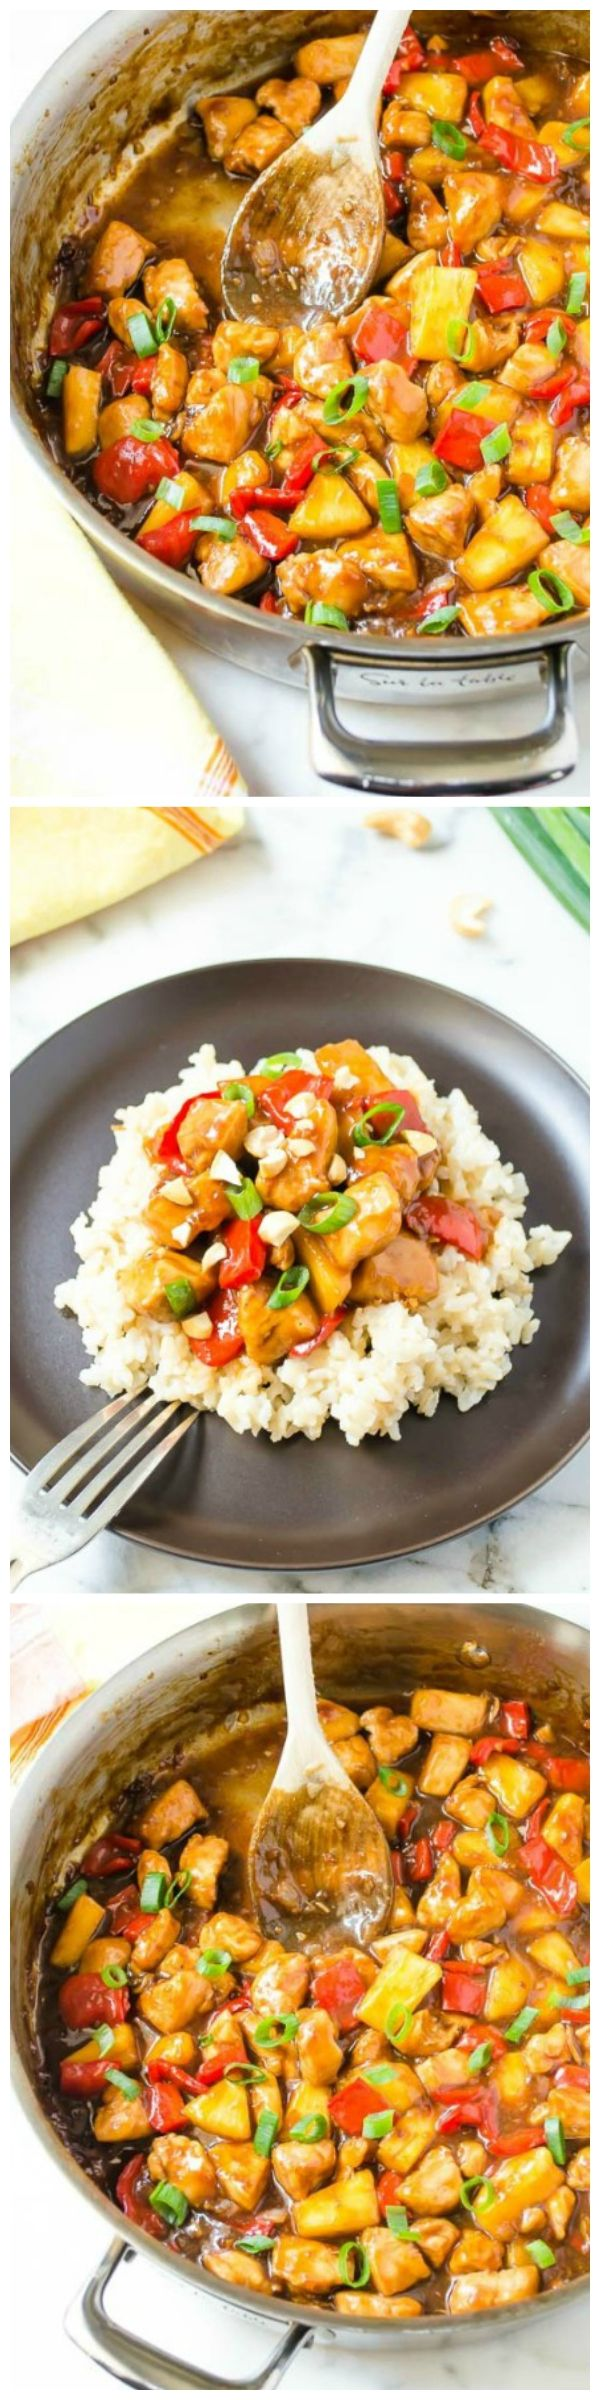 Honey Pineapple Chicken Teriyaki Skillet is a delicious 30 minute meal that's quicker to throw together than it is to pickup takeout! {GF}